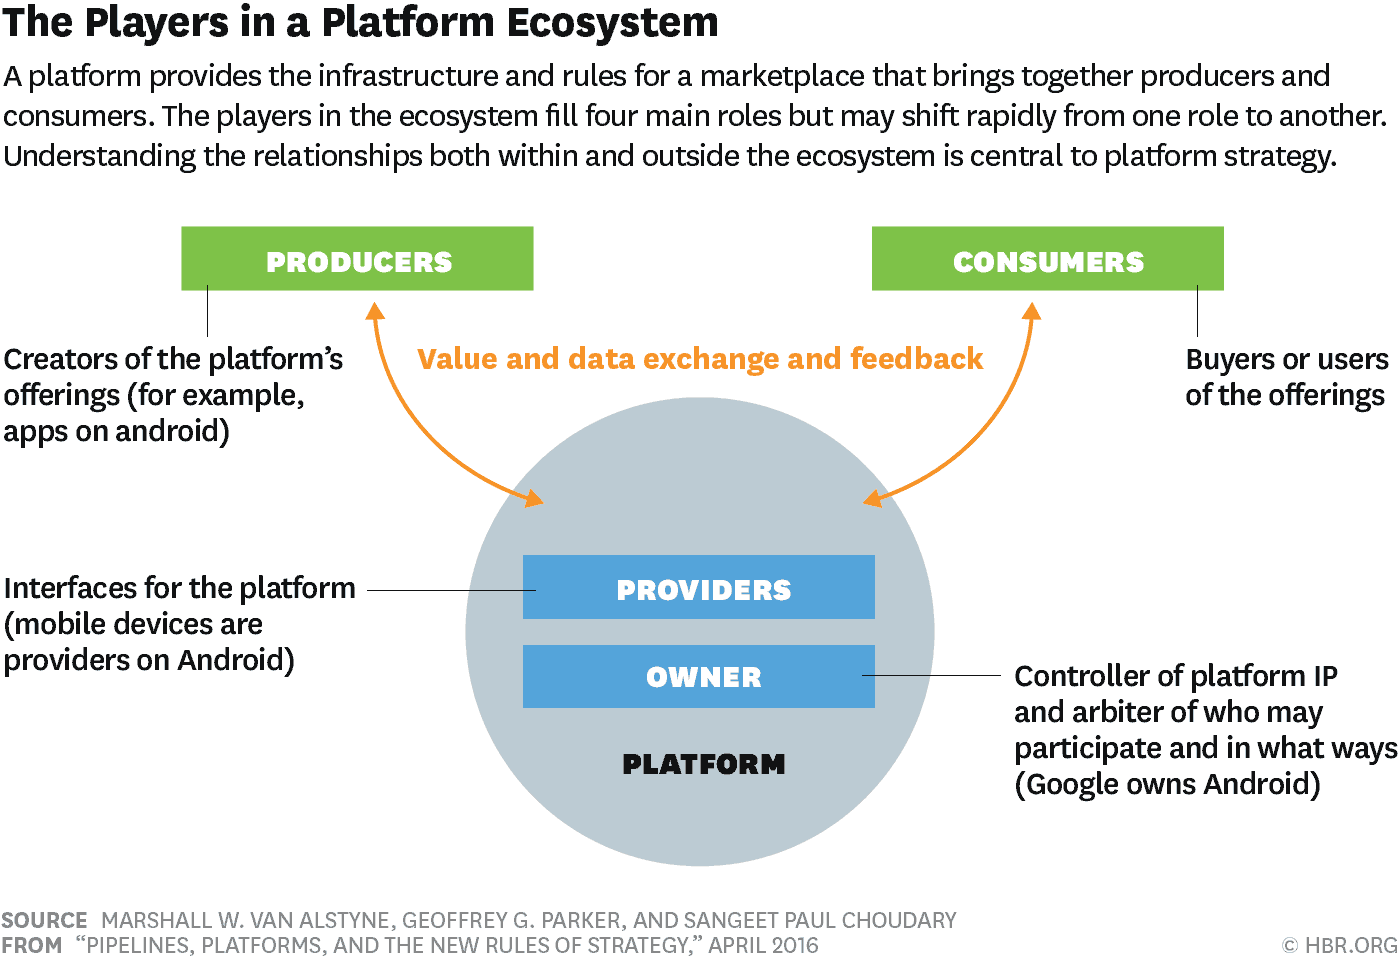 Pipelines, Platforms, and the New Rules of Strategy